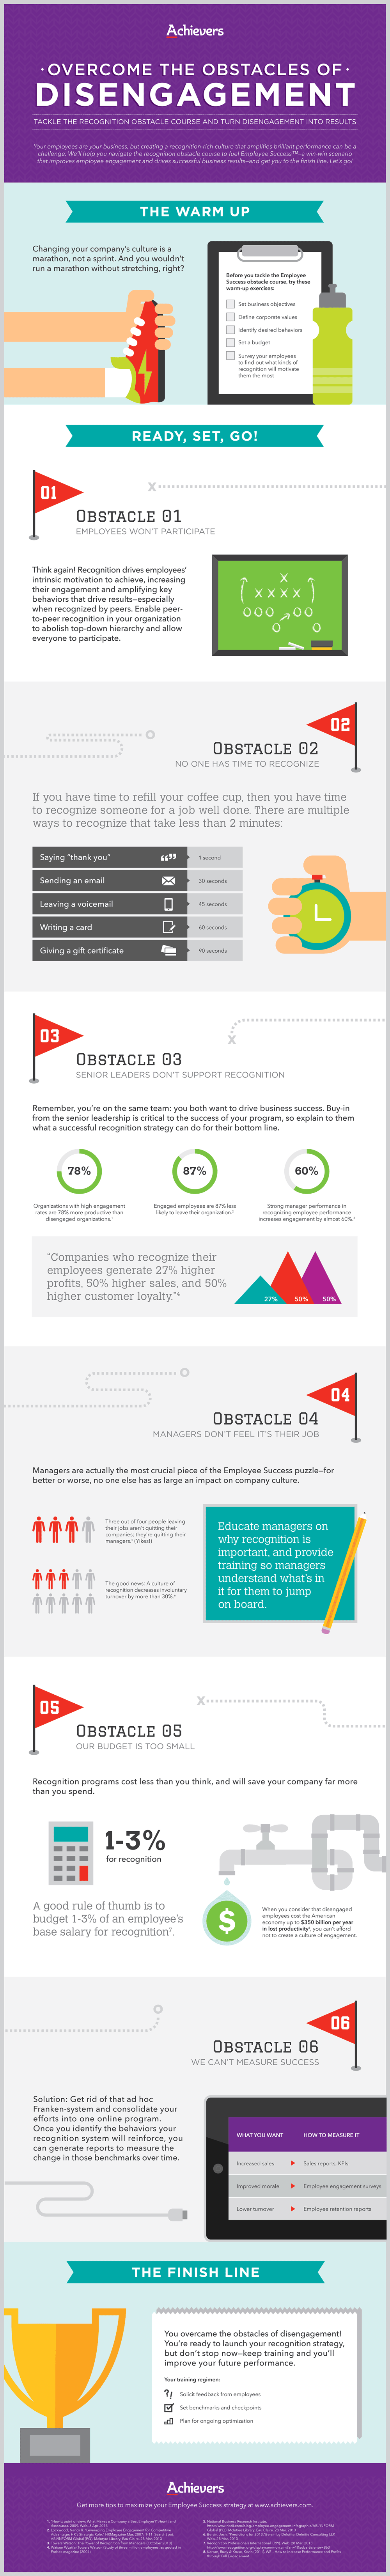 The Obstacle Course of Employee Engagement [INFOGRAPHIC]